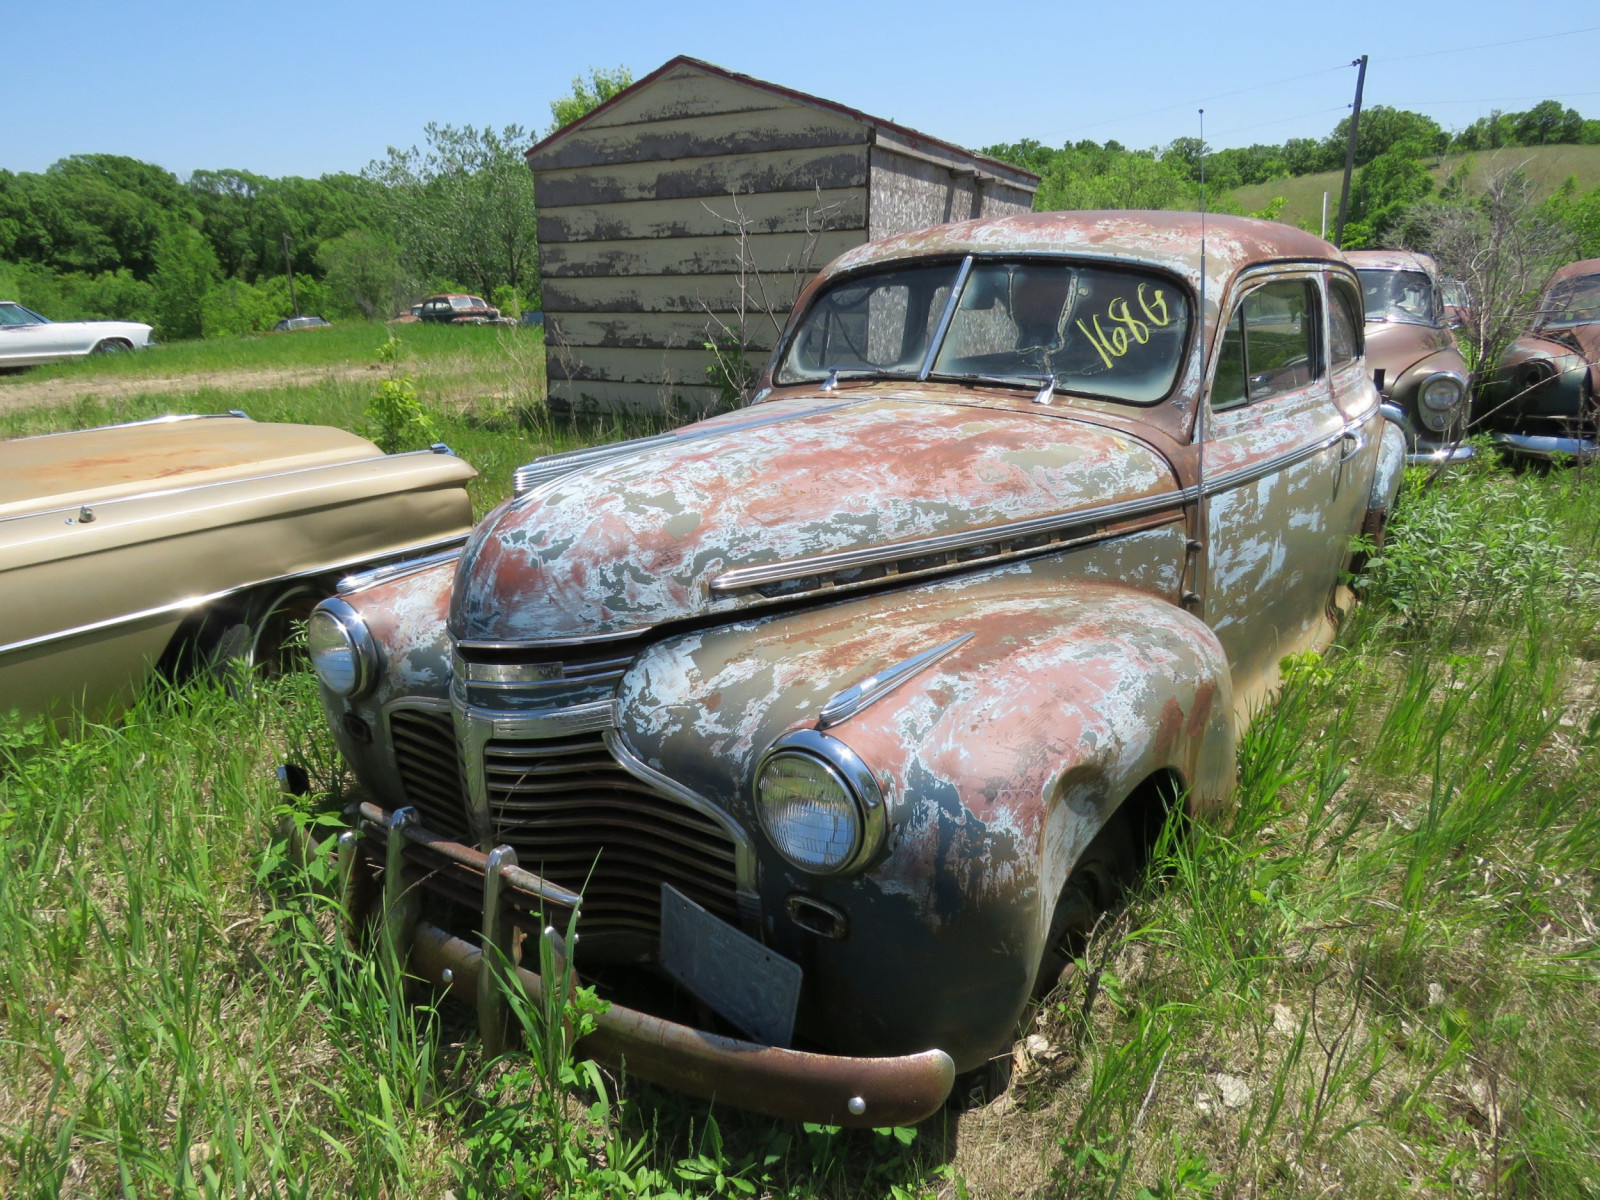 1941 Chevrolet 2dr Sedan for Project or parts - Image 1